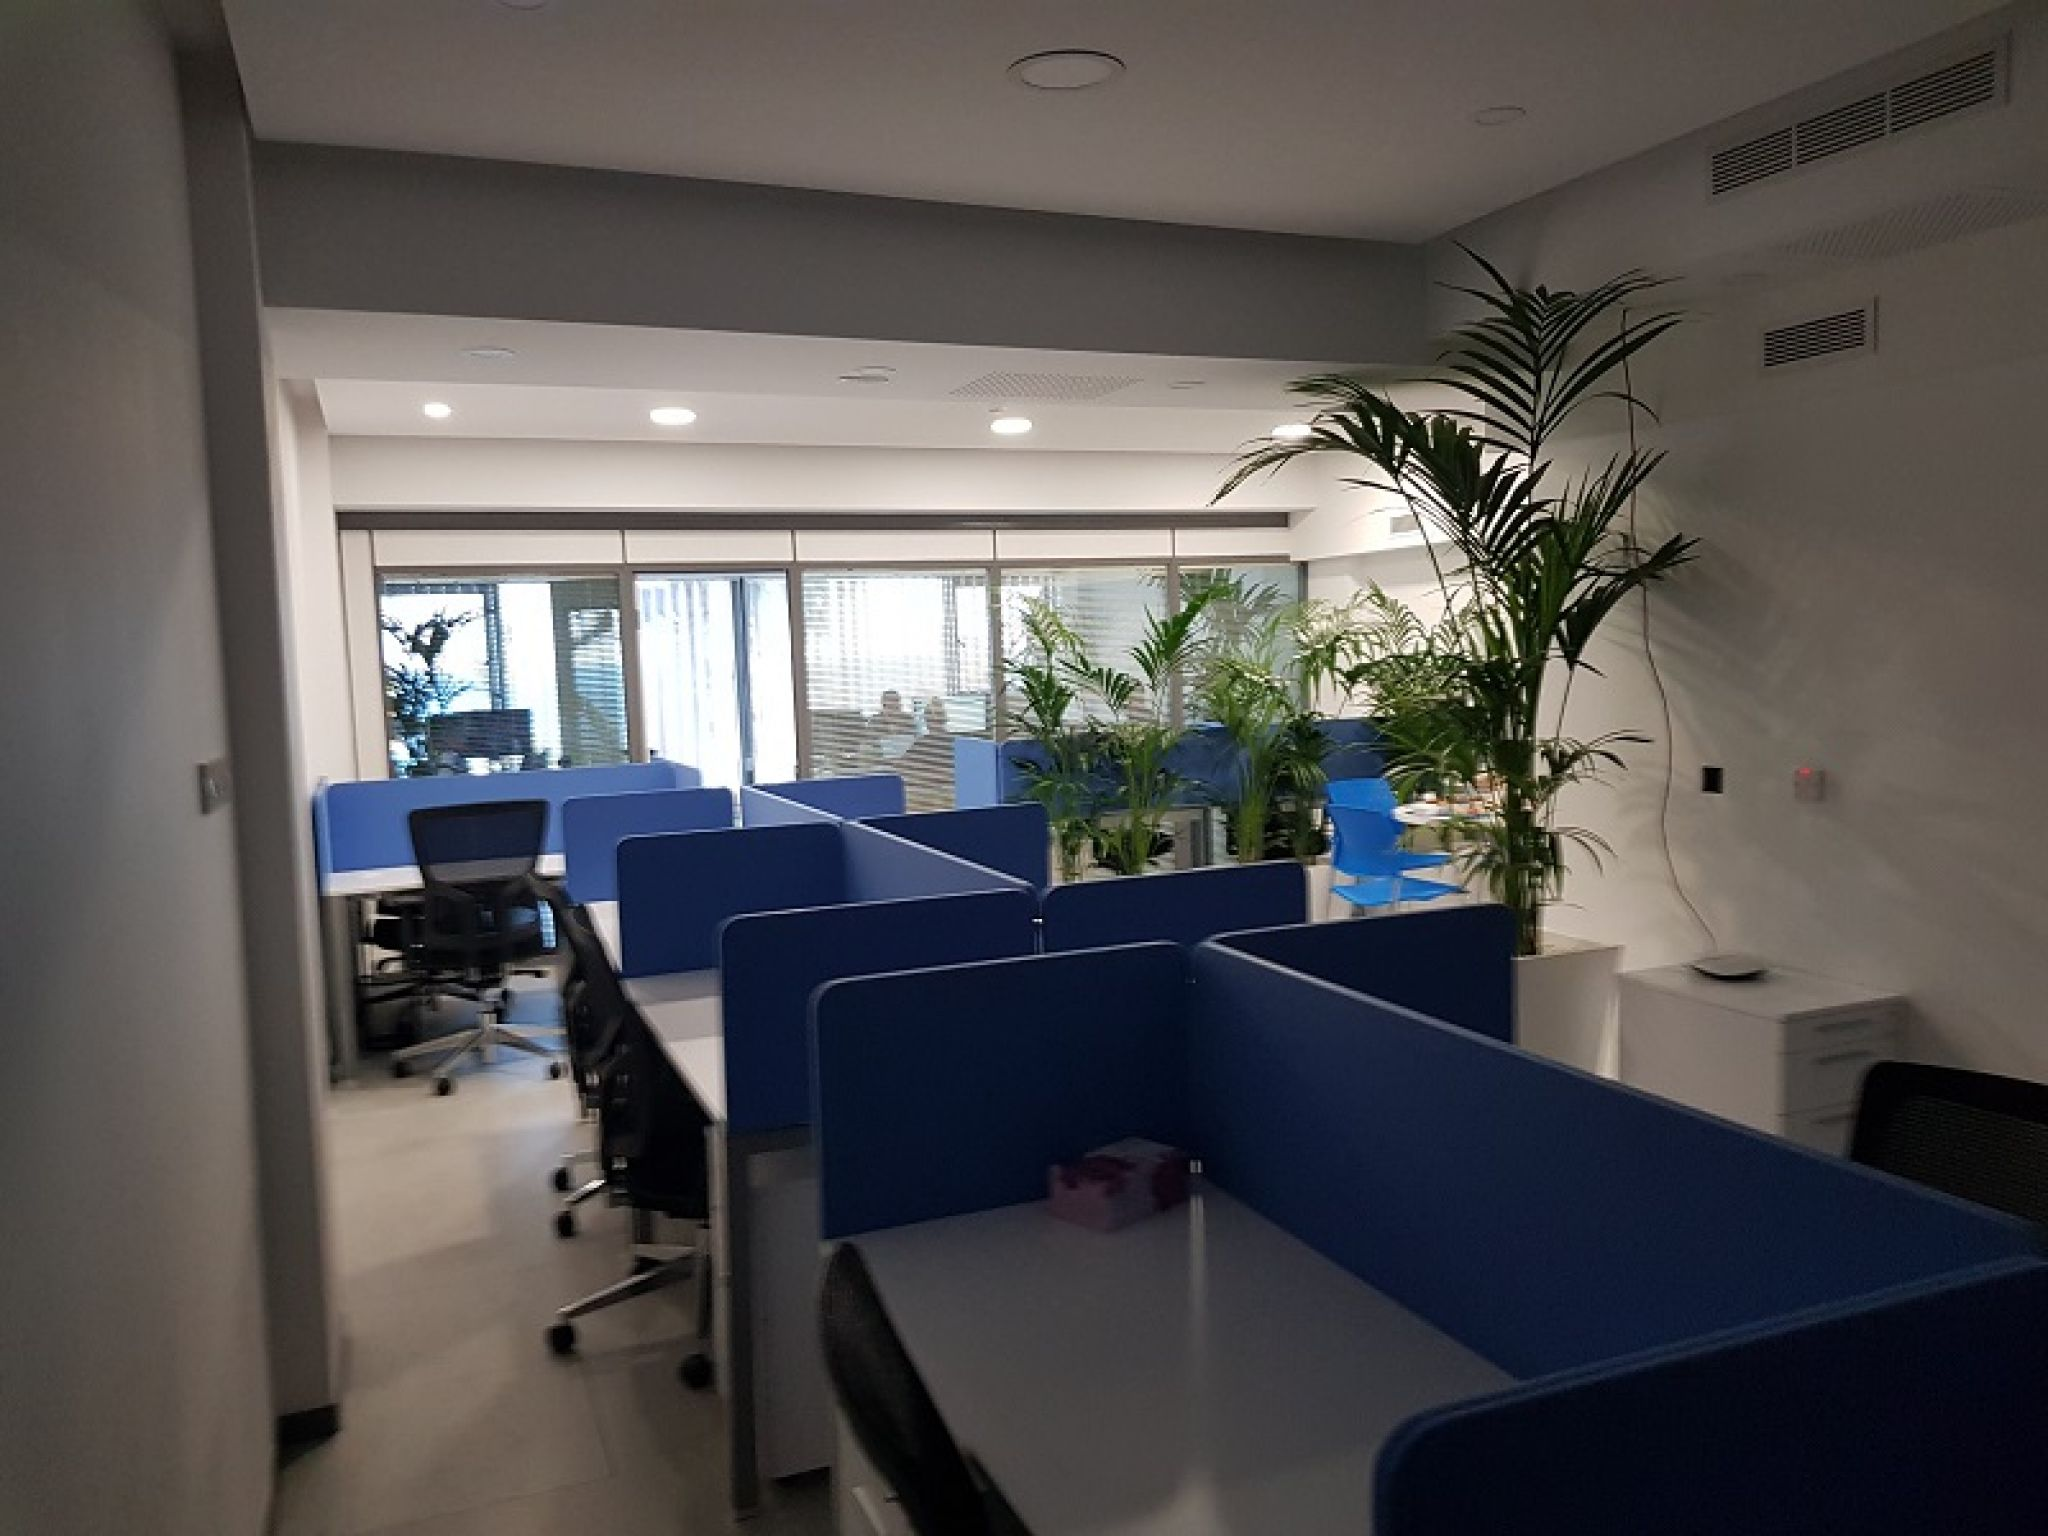 135 sqm Office space for rent by the sea